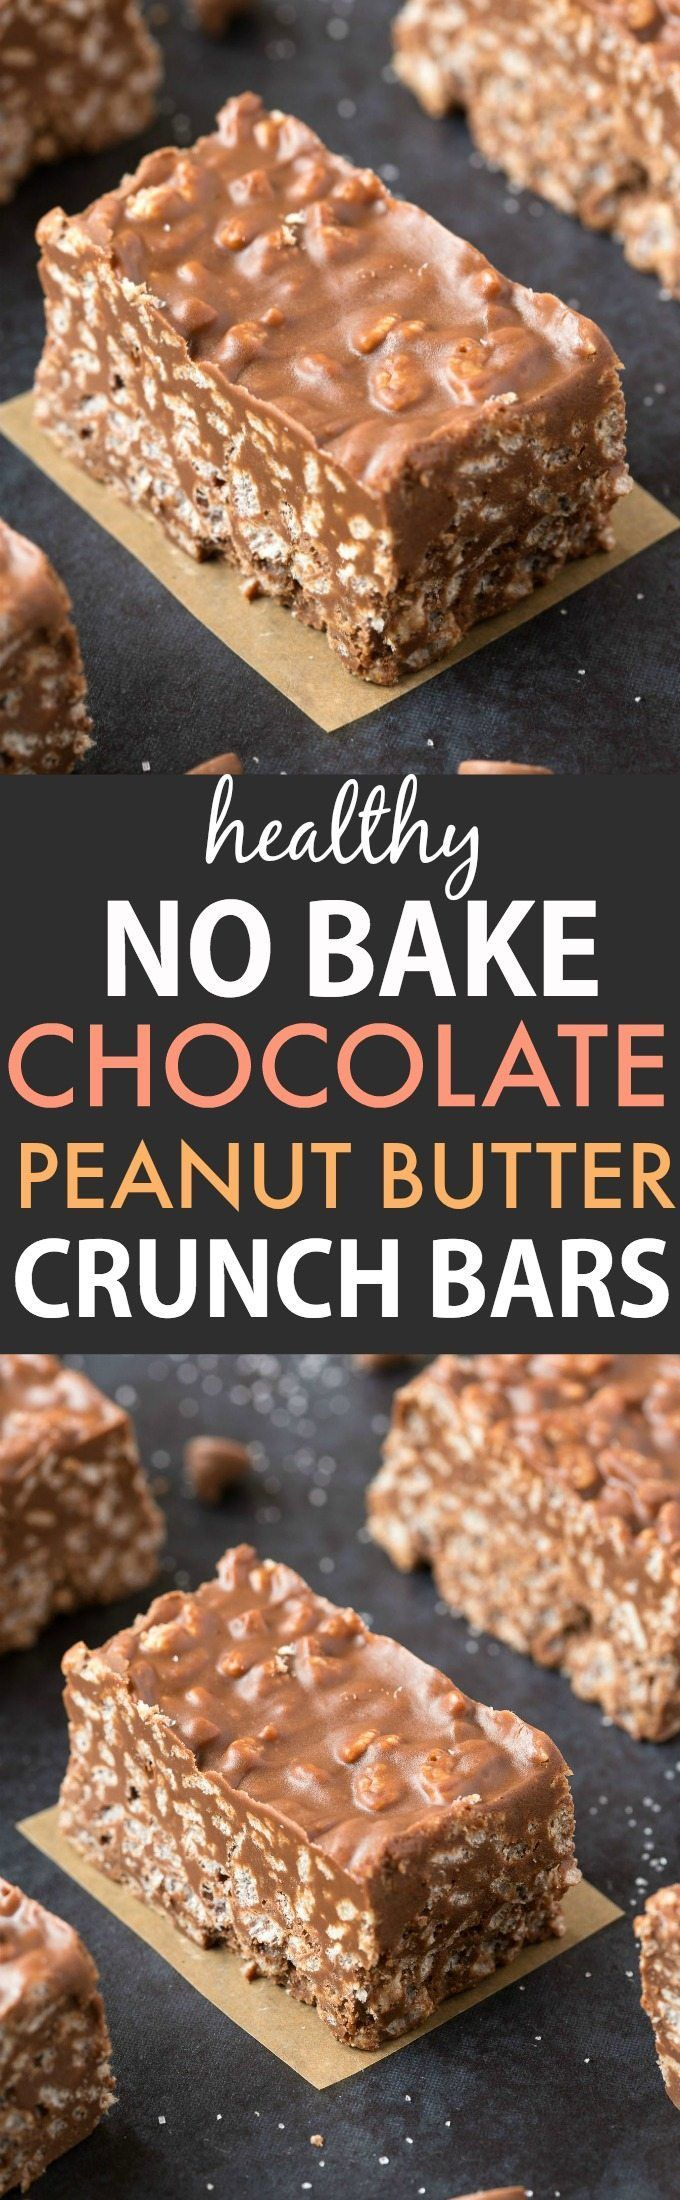 No+Bake+Chocolate+Peanut+Butter+Crunch+Bars+(V,+GF,+DF)-+Easy,+fuss-free+and+delicious,+this+healthy+candy+bar+copycat+combines+cereal,+chocolate+and+peanut+butter+in+one!+{vegan,+gluten+free,+sugar+free+recipe}-+thebigmansworld.com